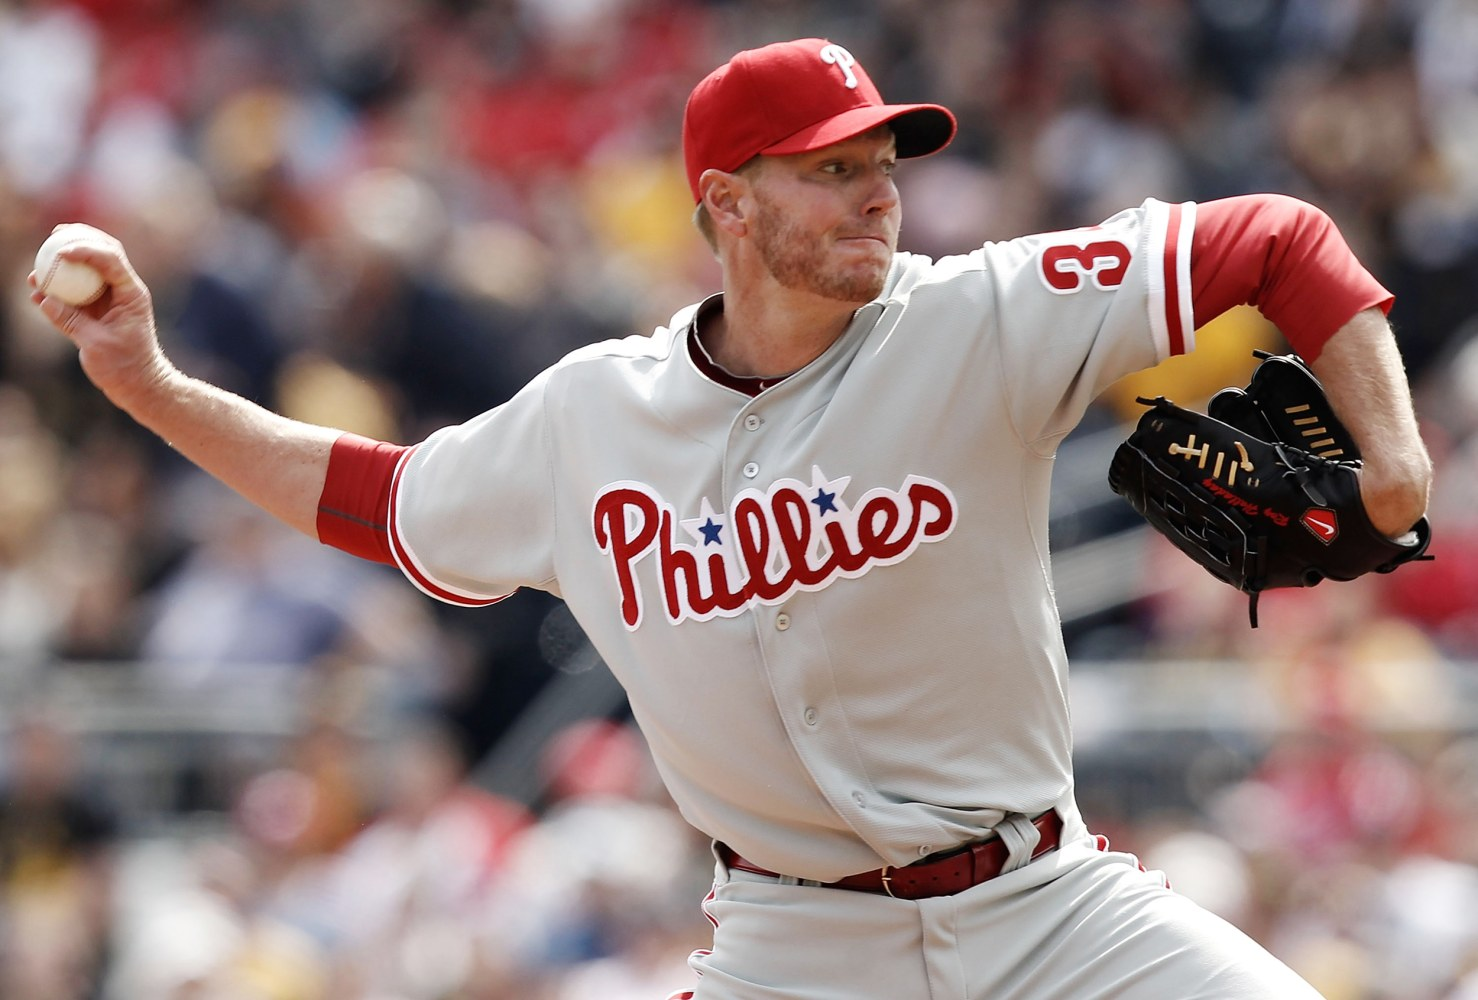 Former Phillies pitcher Roy Halladay dies in Gulf of Mexico plane crash